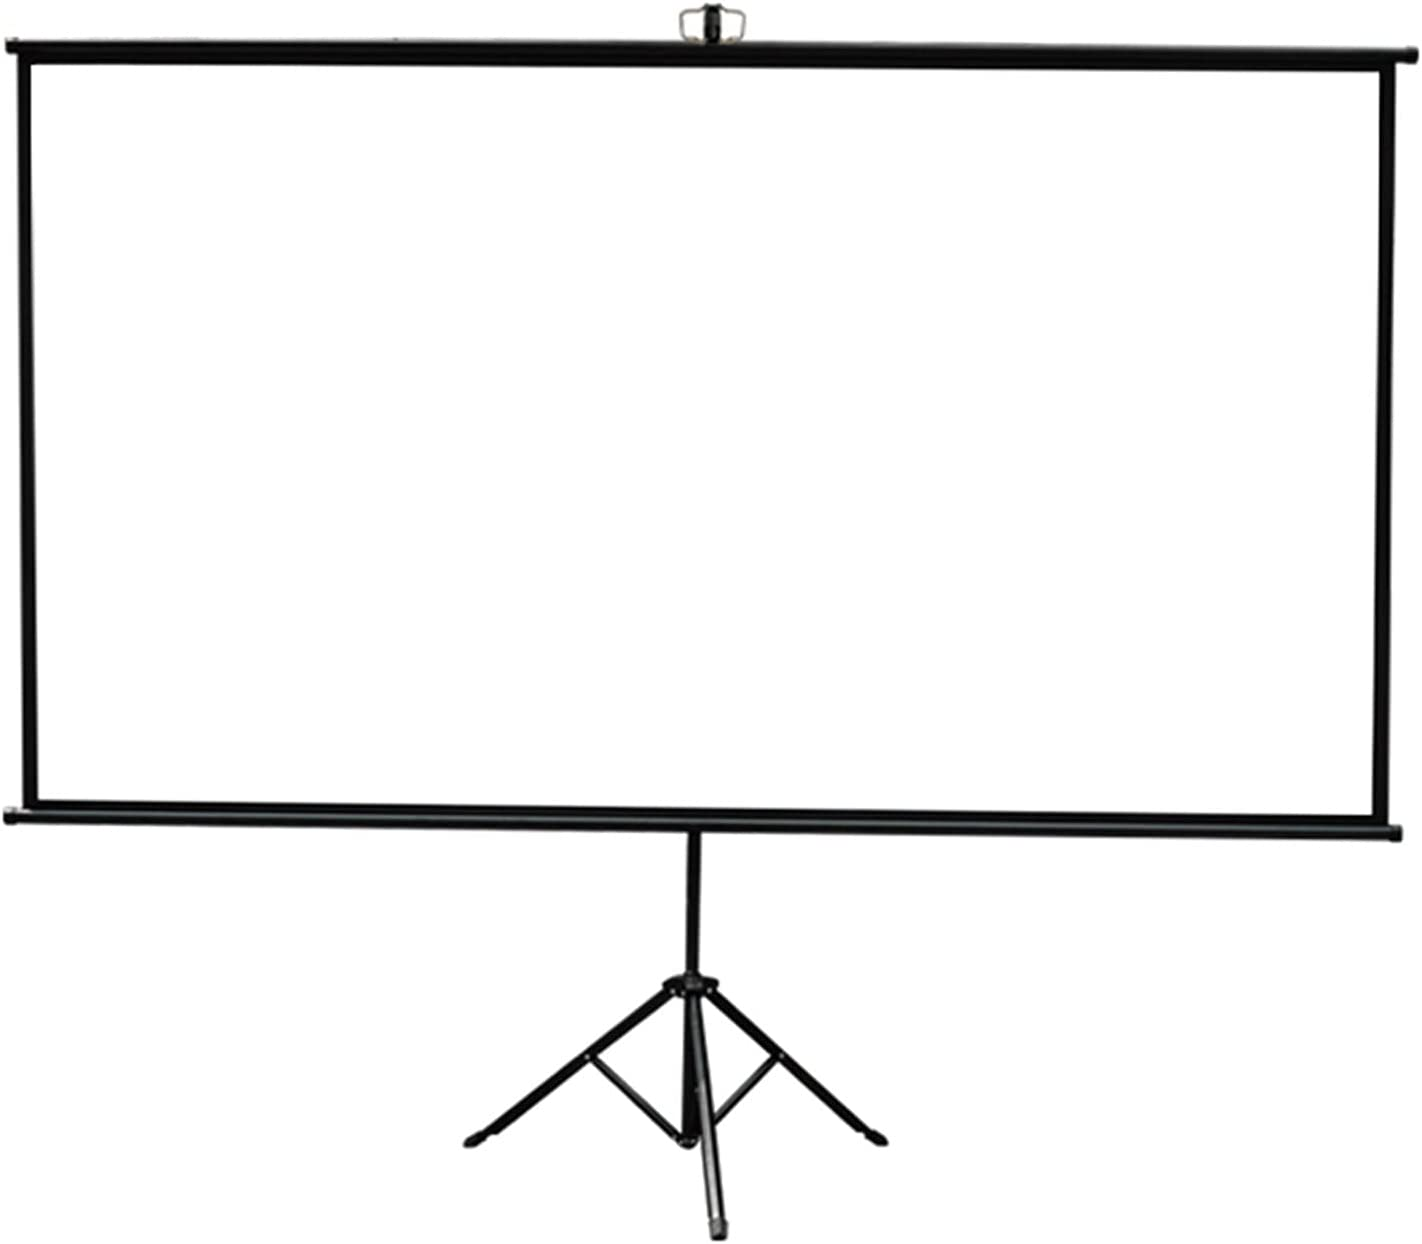 Projector Screen Portable 60/72/84 Inch, Projection screen 4:3/16:9 Aspect Ratio School Home Cinema for Screen, HD Screen for Indoor and Outdoor Movies Screen ( Color : 16:9 Screen , Size : 72inch )